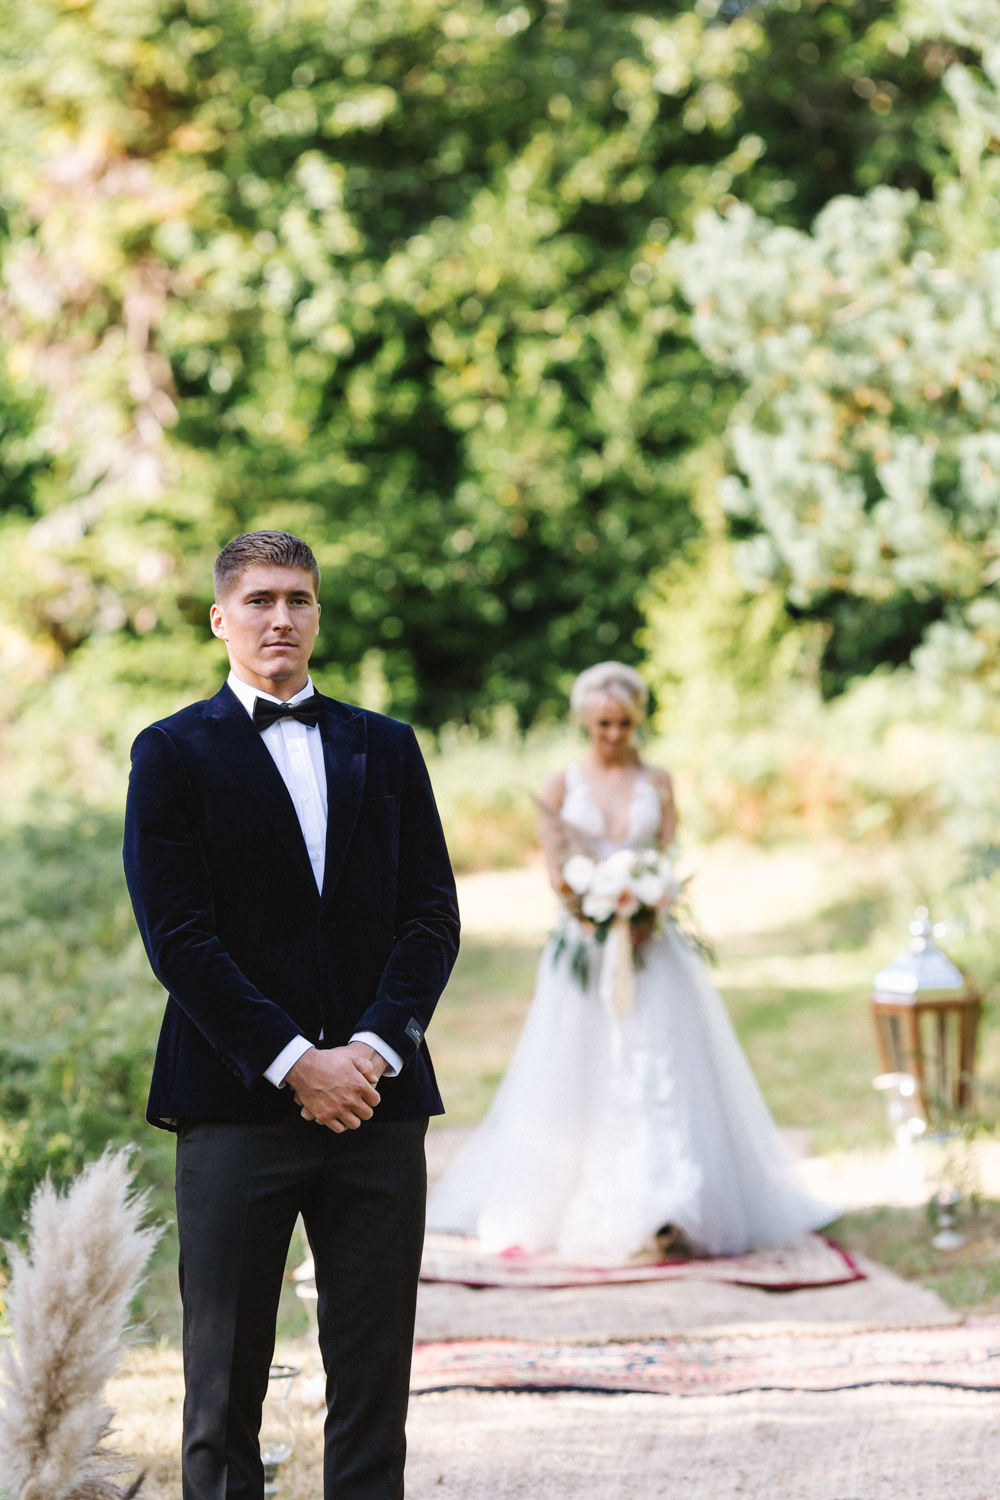 Groom Suit Tux Tuxedo Bow Tie Boconnoc Wedding Debs Alexander Photography